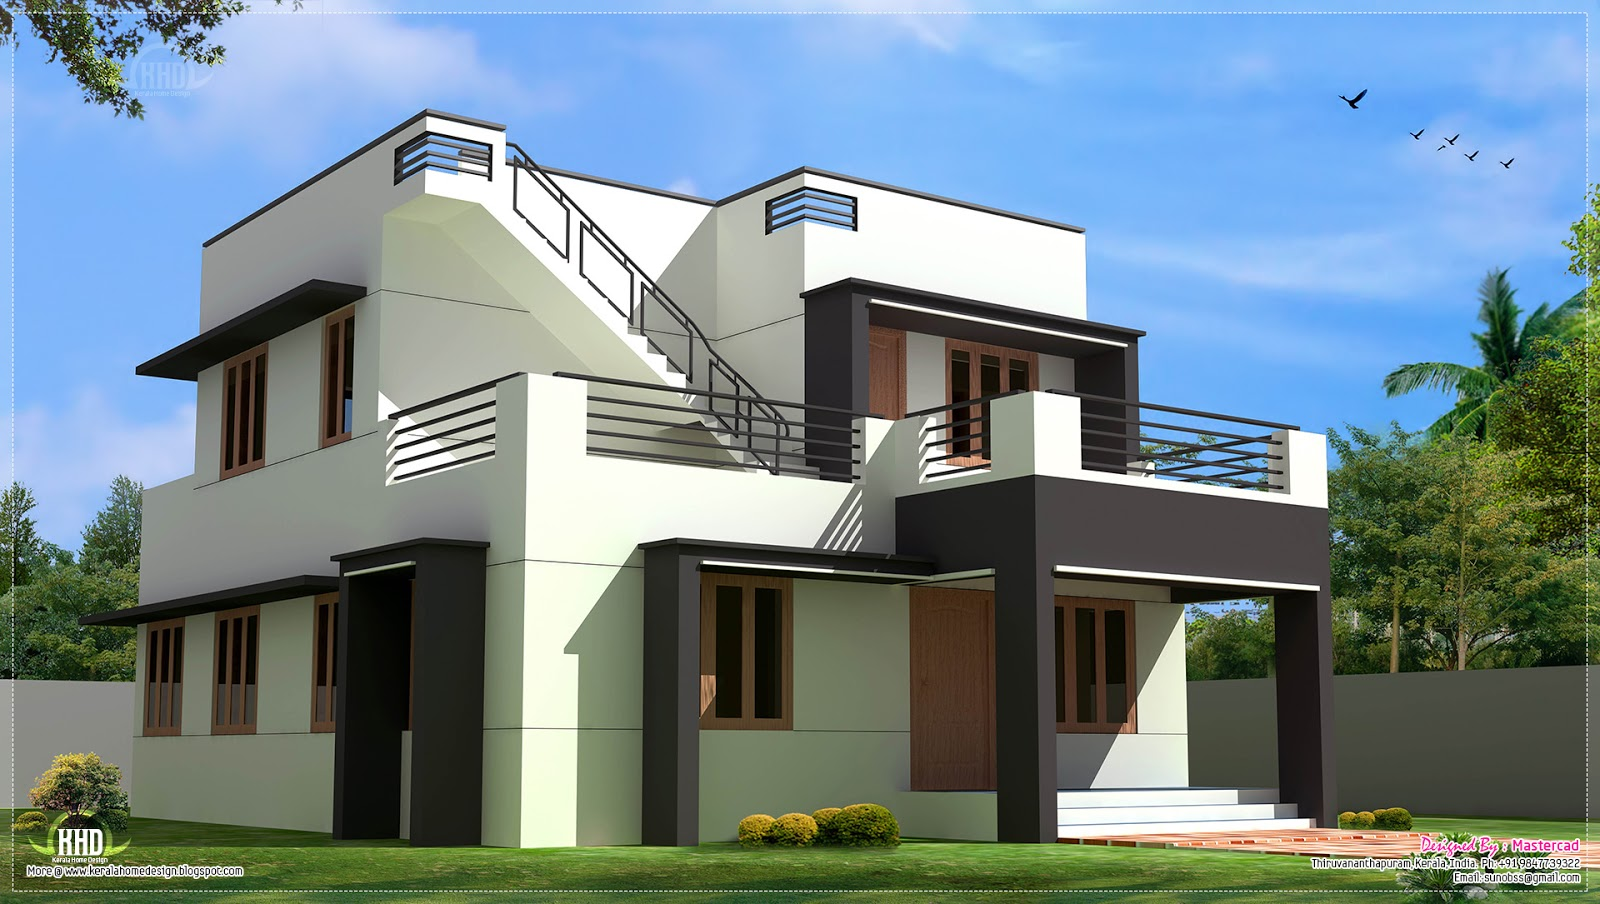 Modern house design in 1700 kerala home design for Contemporary style homes in kerala